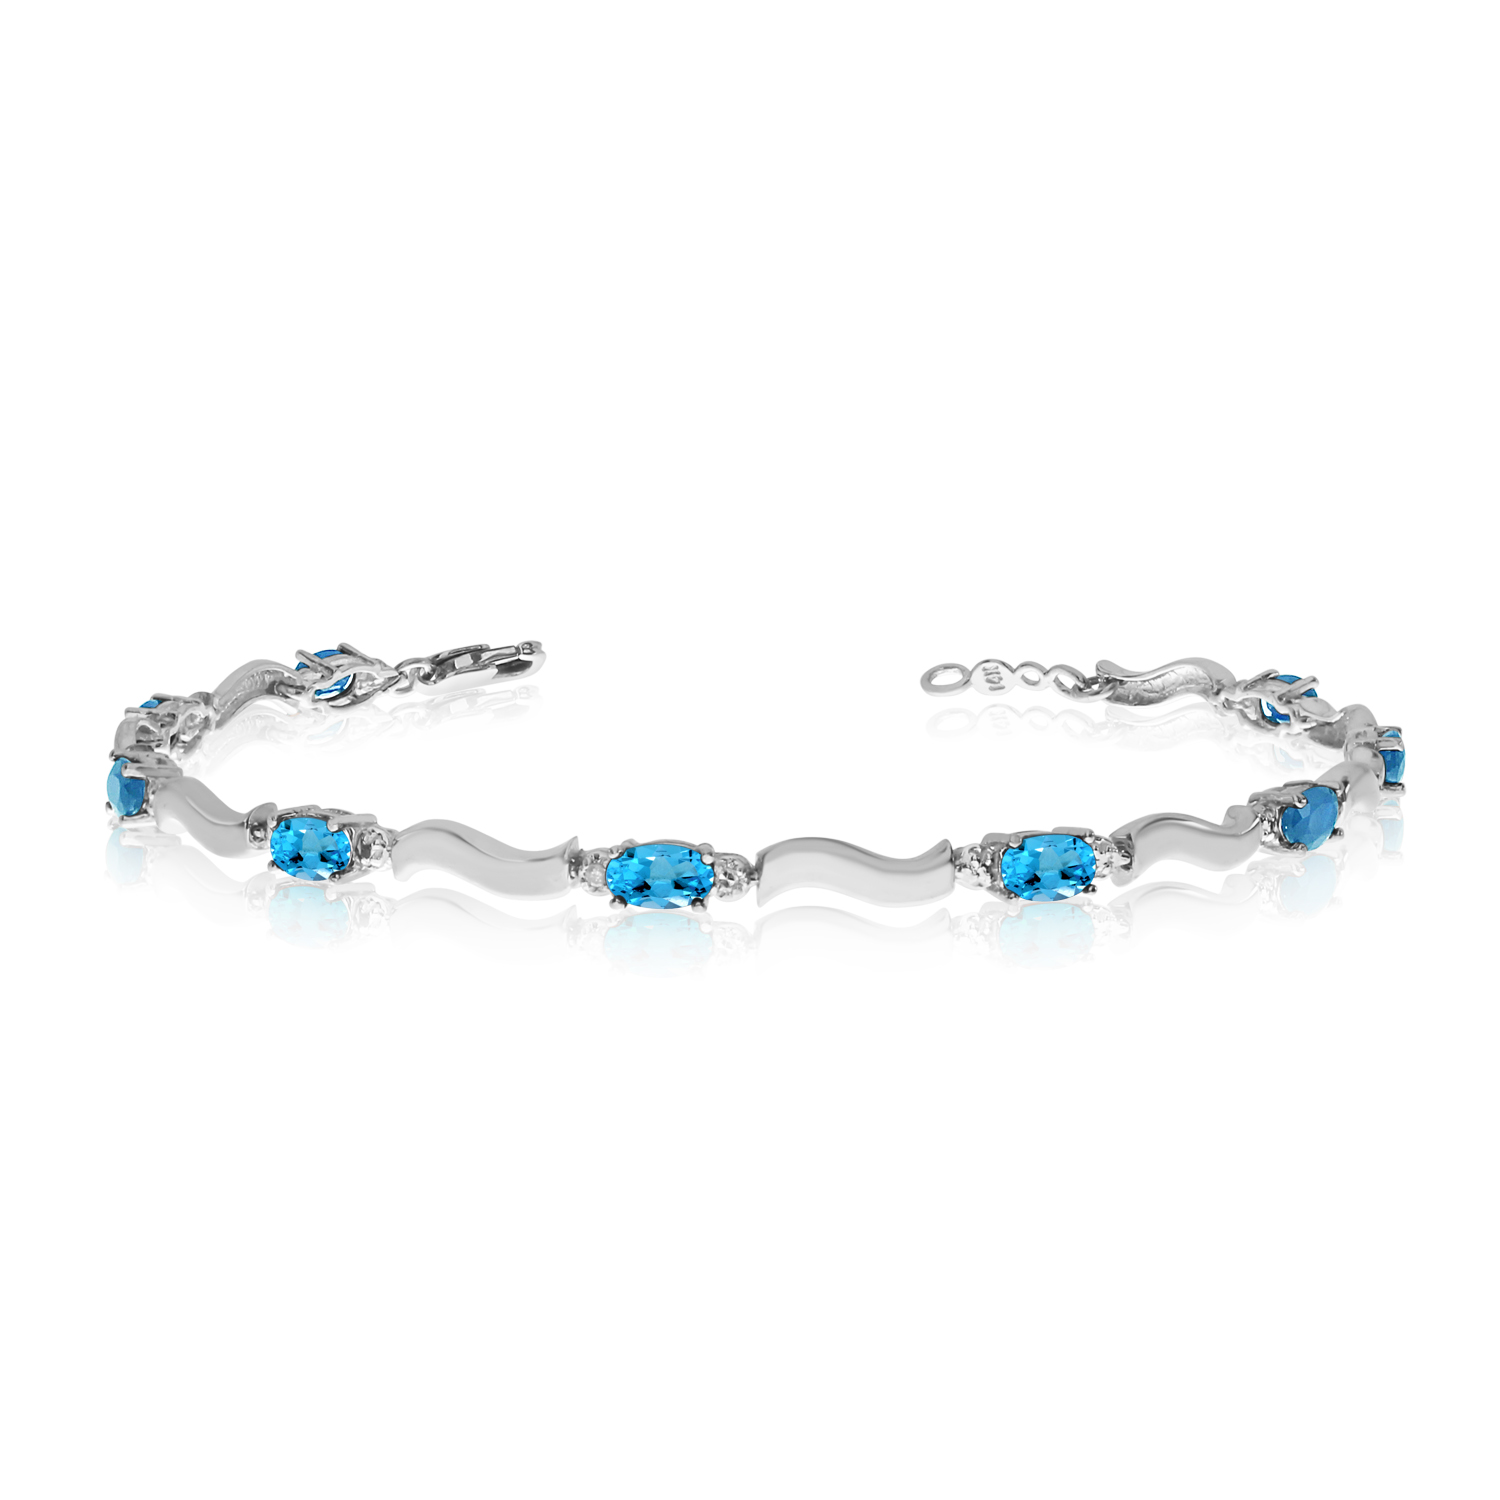 14K White Gold Oval Blue Topaz and Diamond Bracelet by